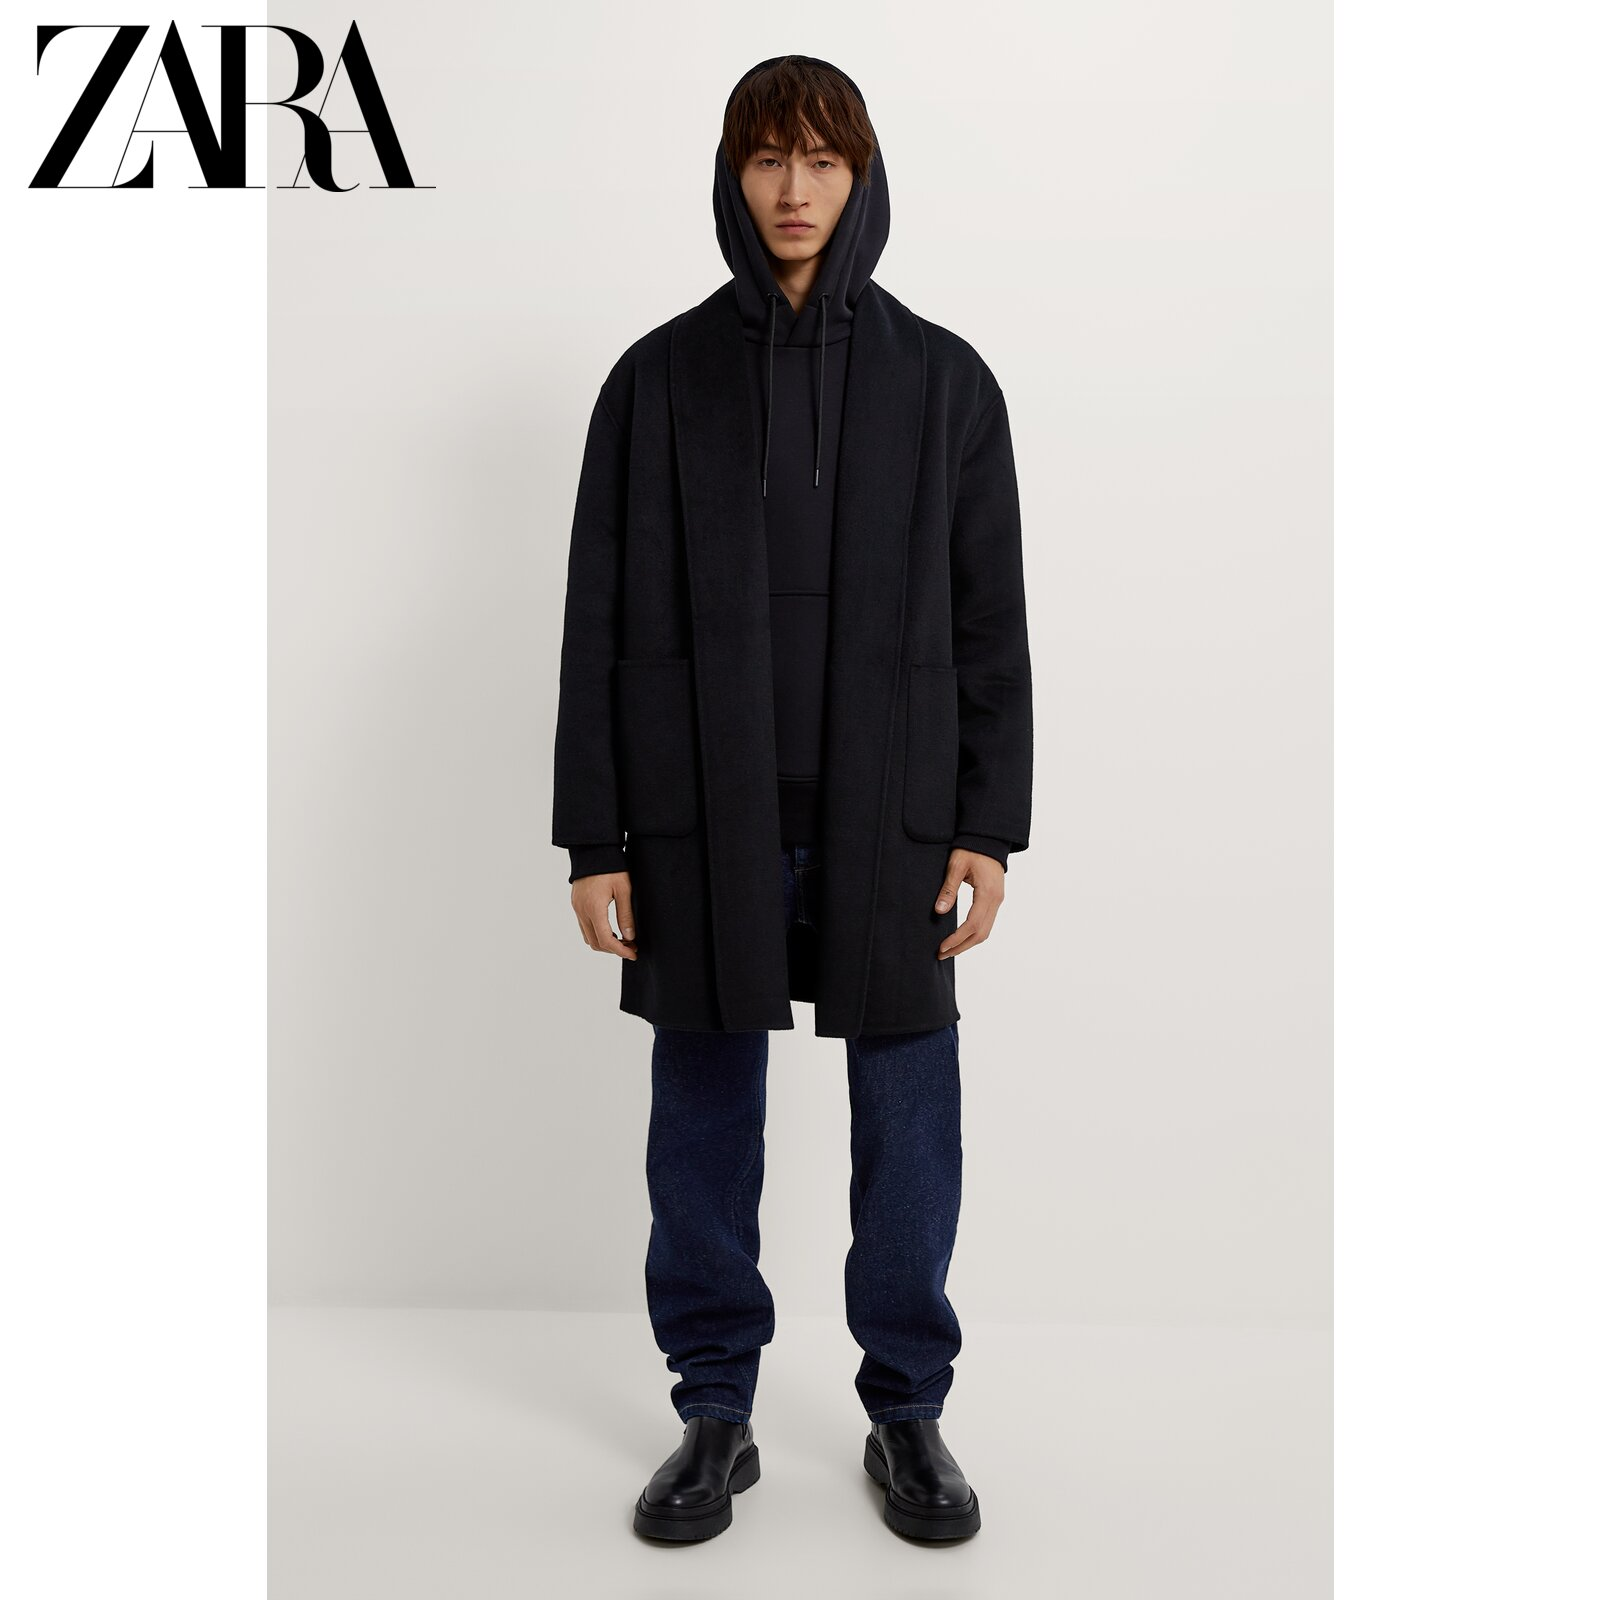 Zara new men's autumn and winter wool double-sided coat jacket 05854690800